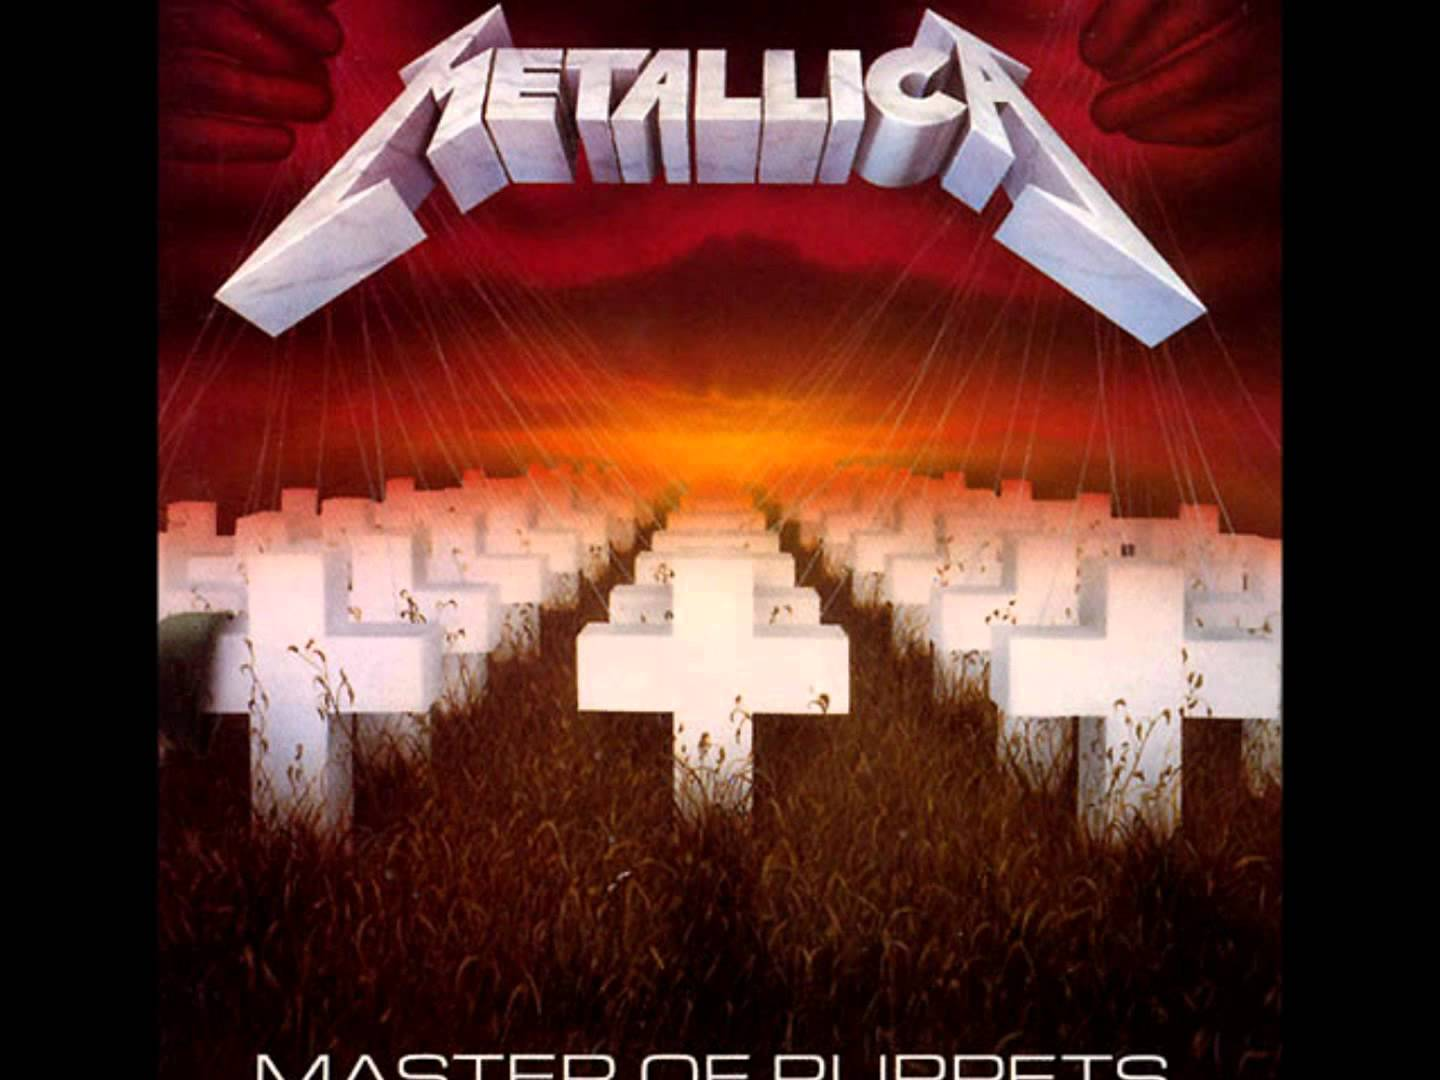 Band Metallica Album Master of Puppets Released March 3